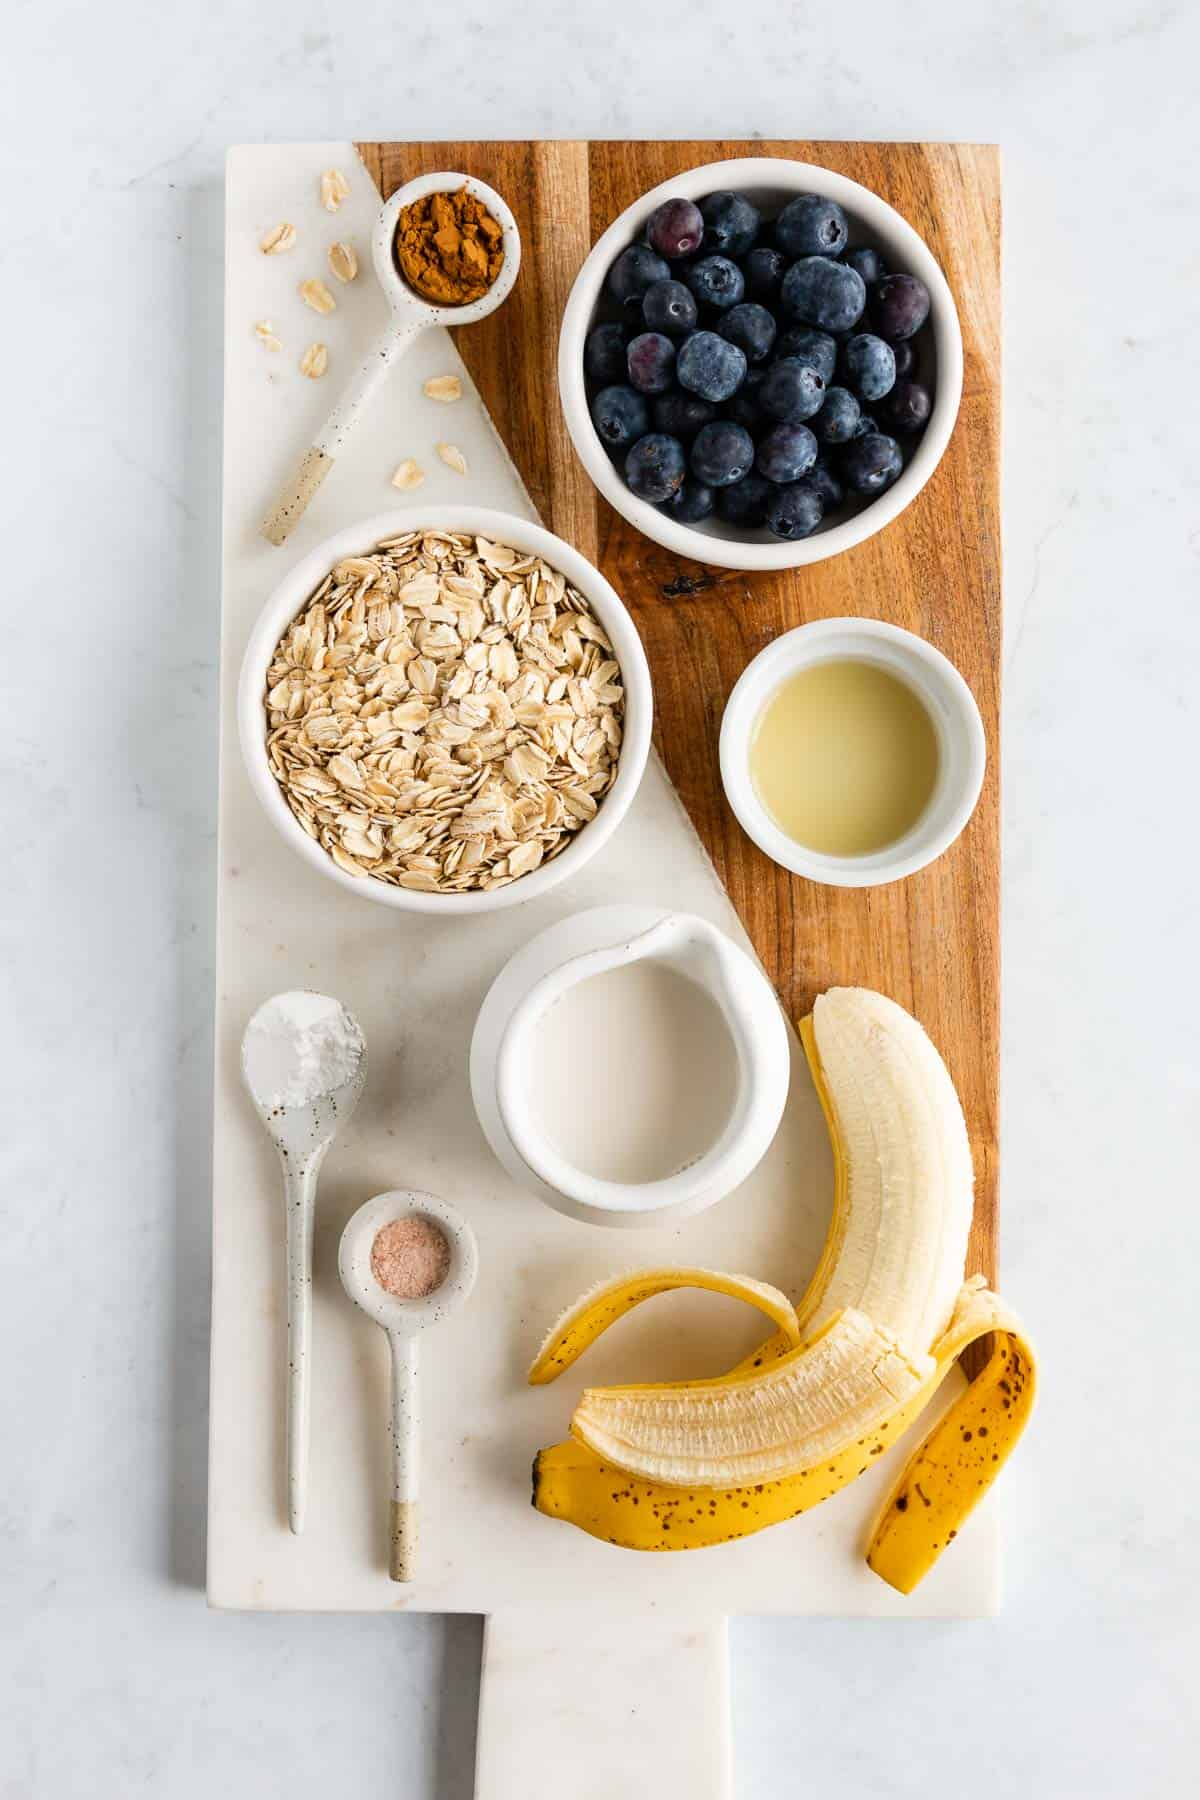 a marble and wood serving board topped with a peeled banana, rolled oats, blueberries, almond milk, cinnamon, baking powder, salt, and lemon juice